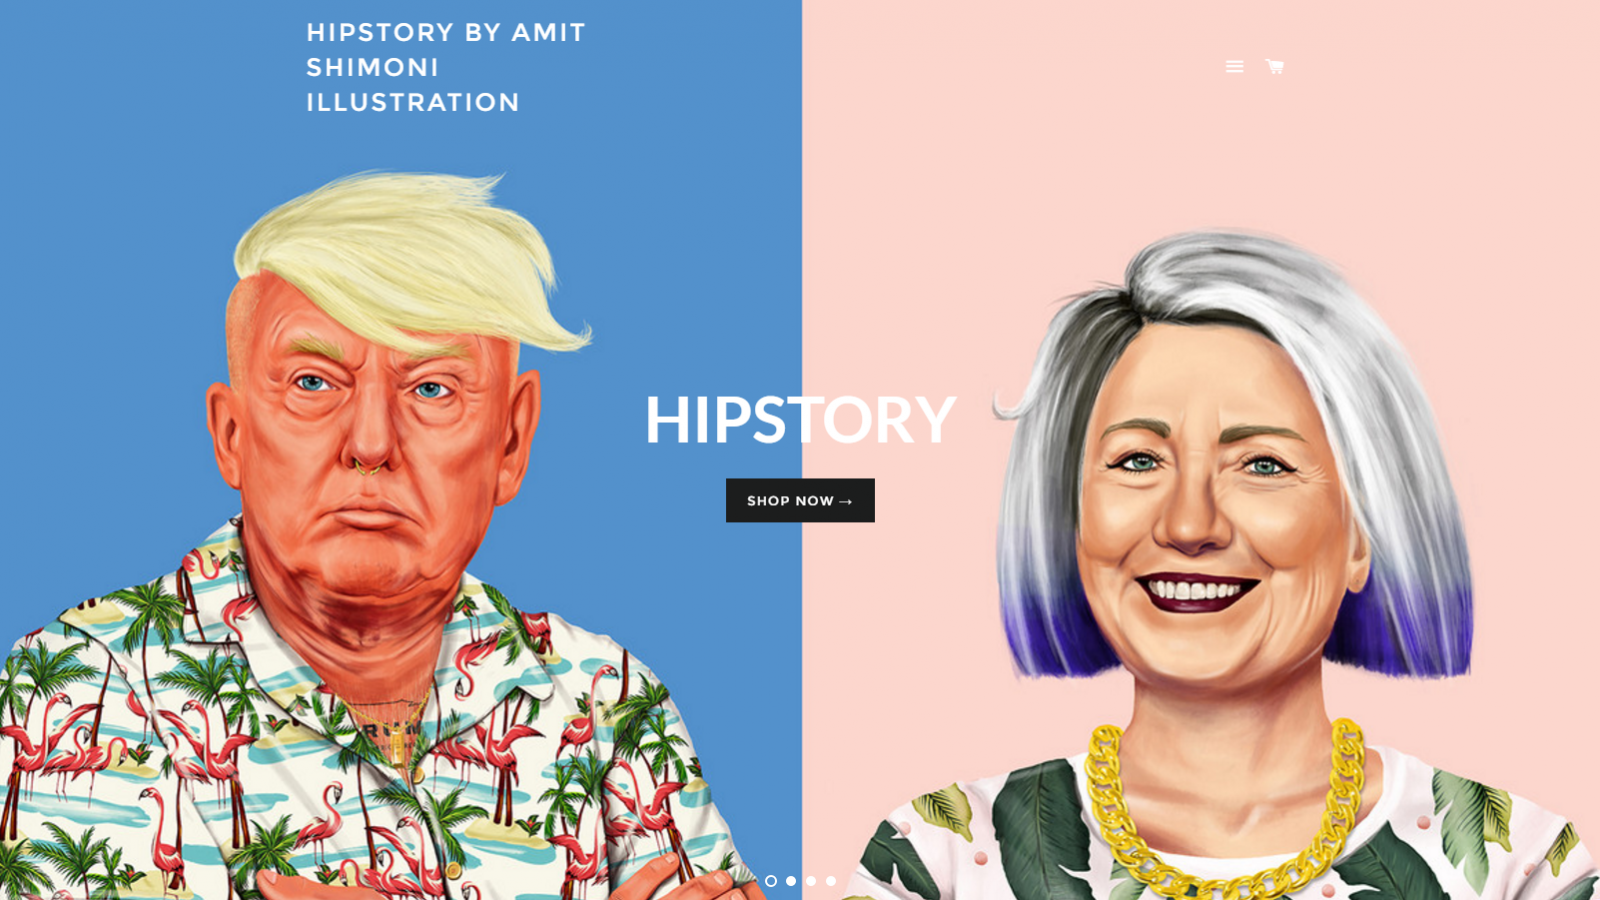 Weekly Roundup: Apple Design Awards, Google Fonts, Hipstory and more.